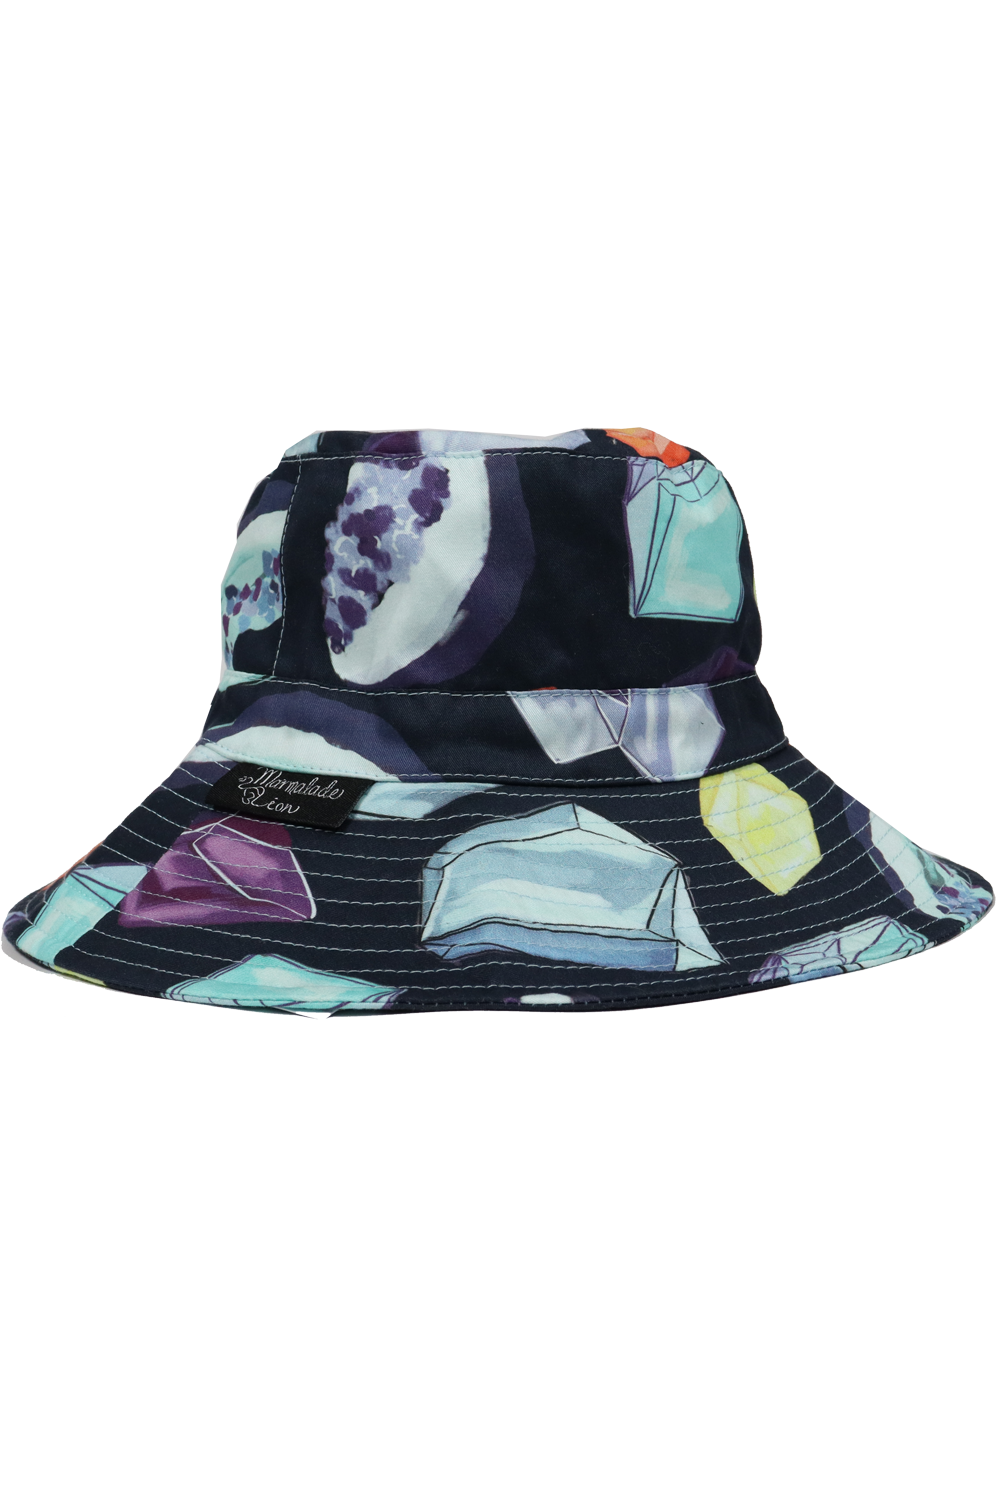 Crystals Children's Sun Hat